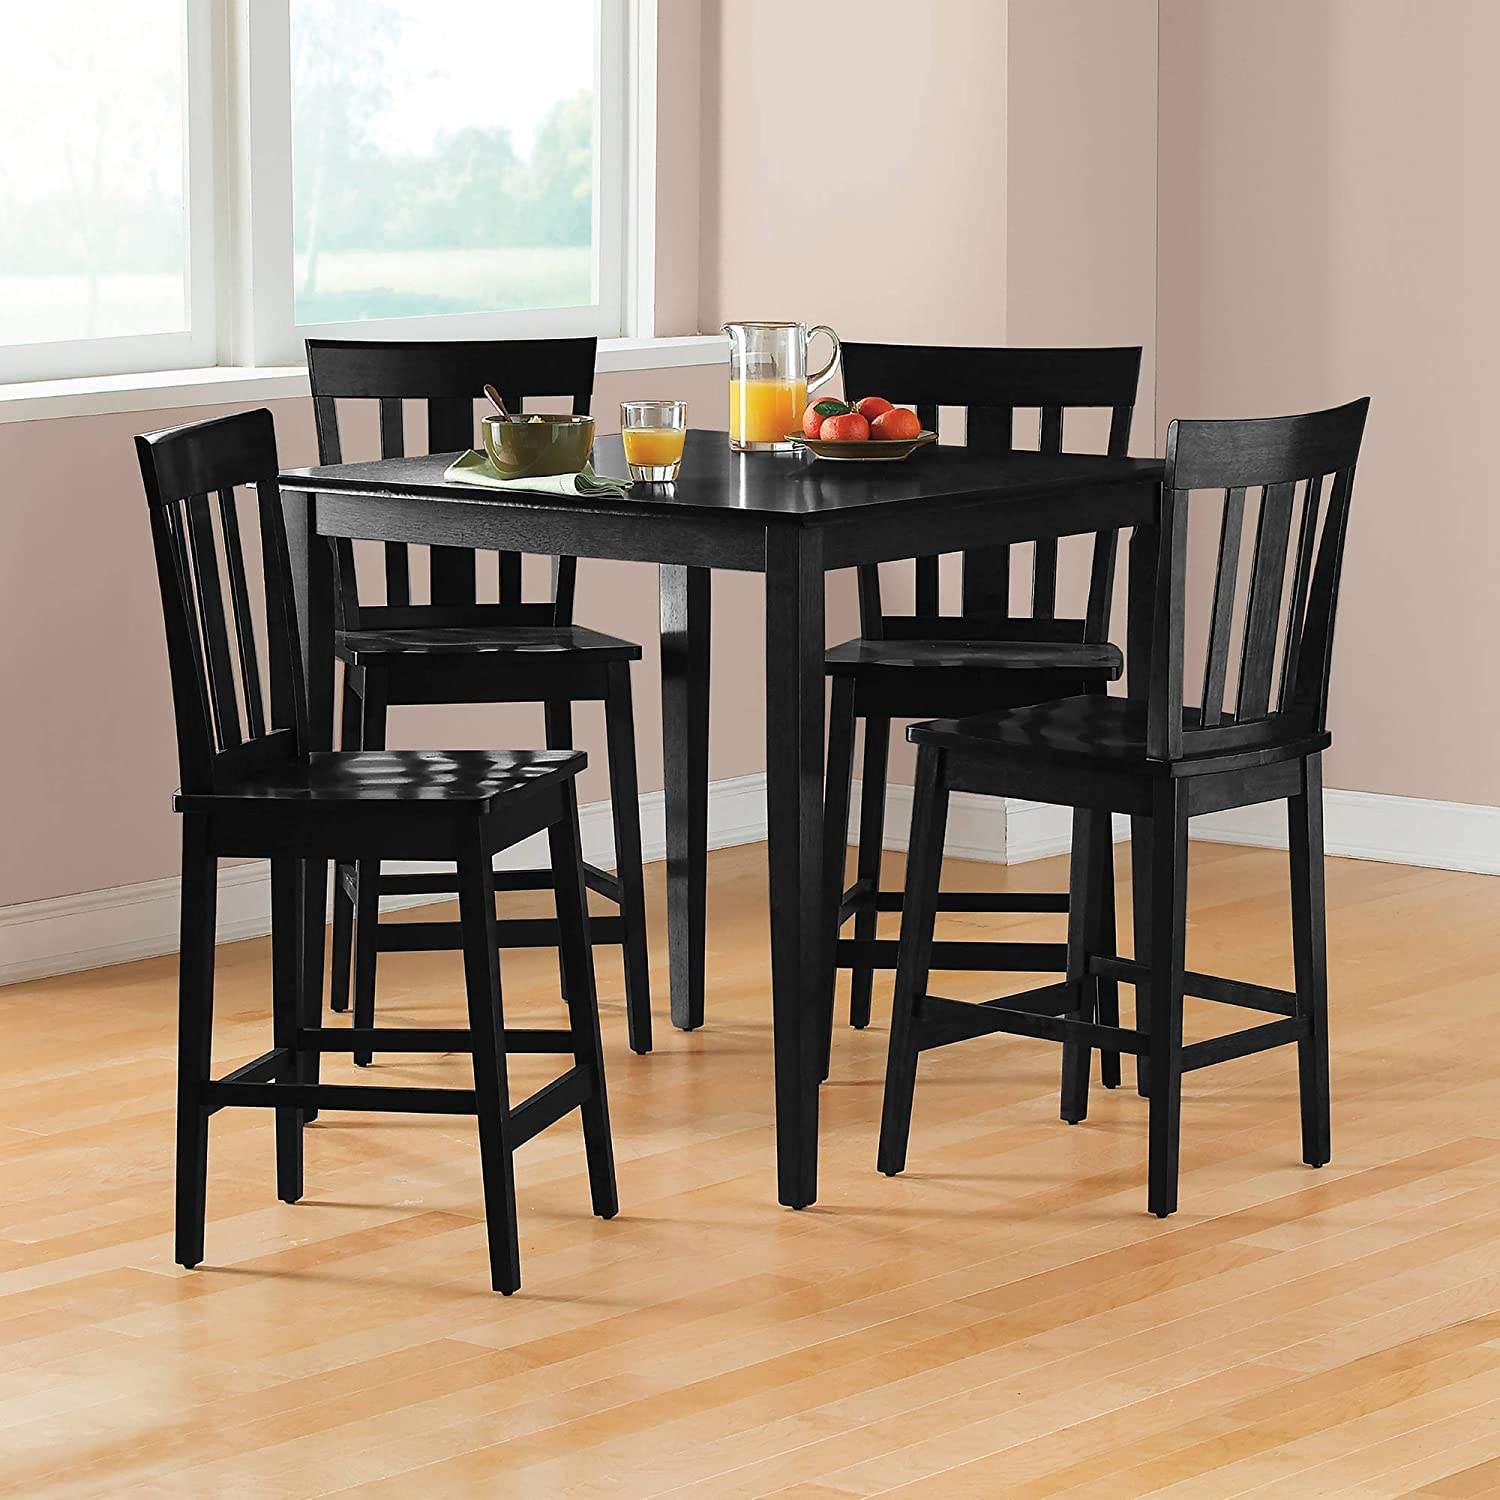 Mainstays 5 Piece Counter Height Dining Set Warm In Black Table Chair Sets